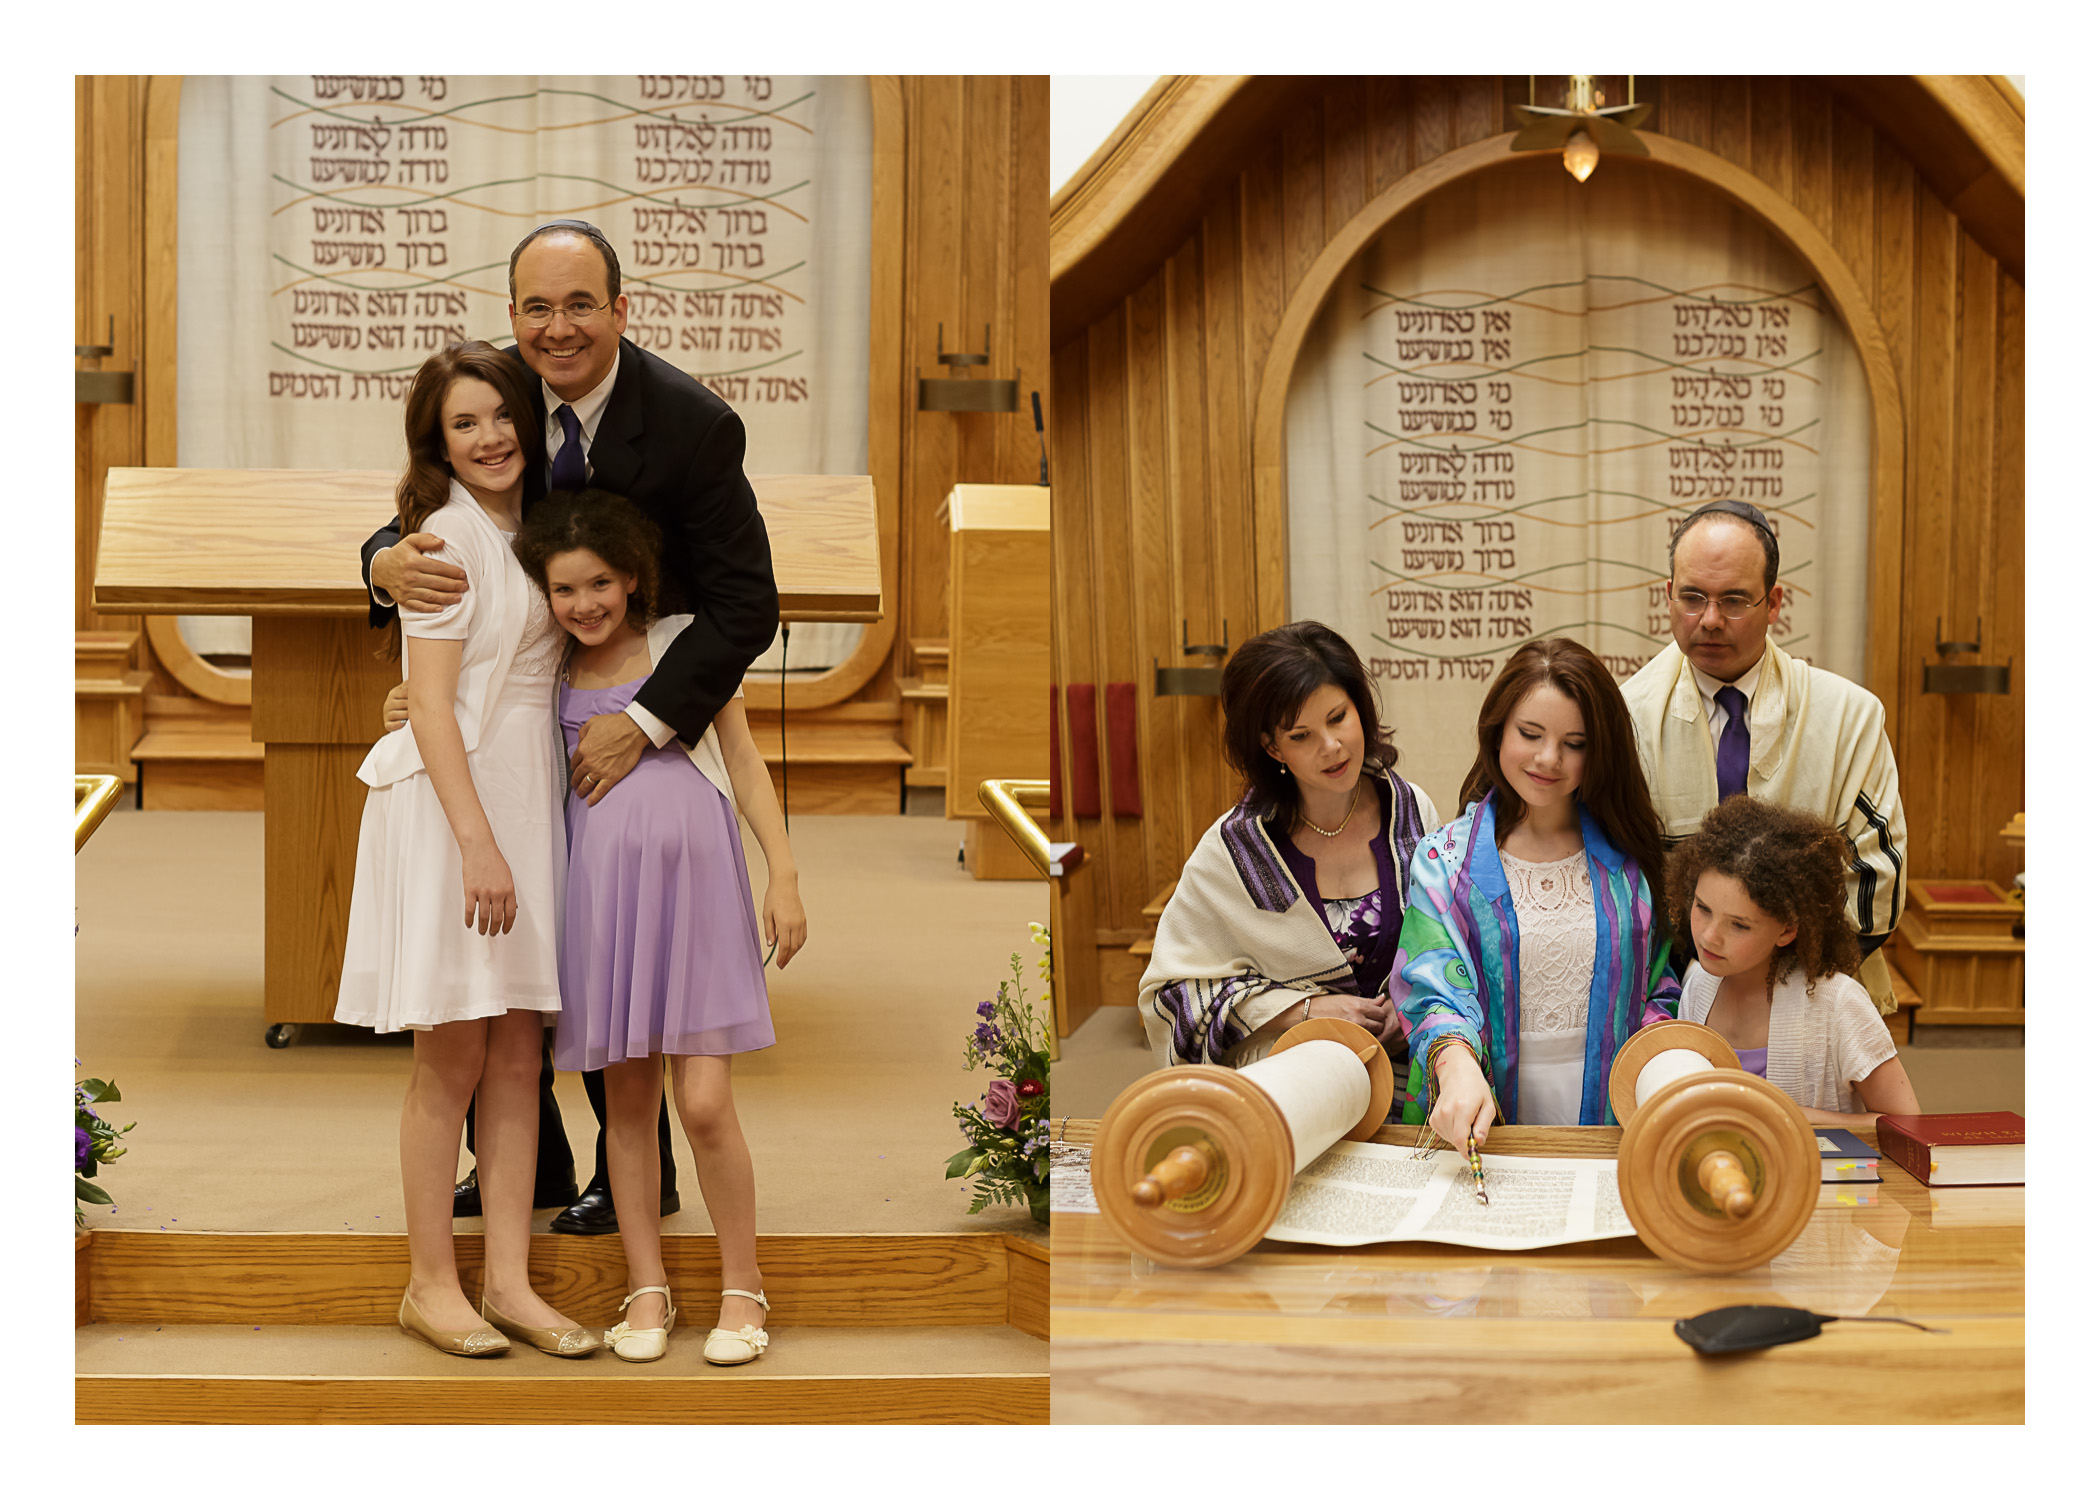 Lily_Ann_Arbor_Bat_Mitzvah_photography_03